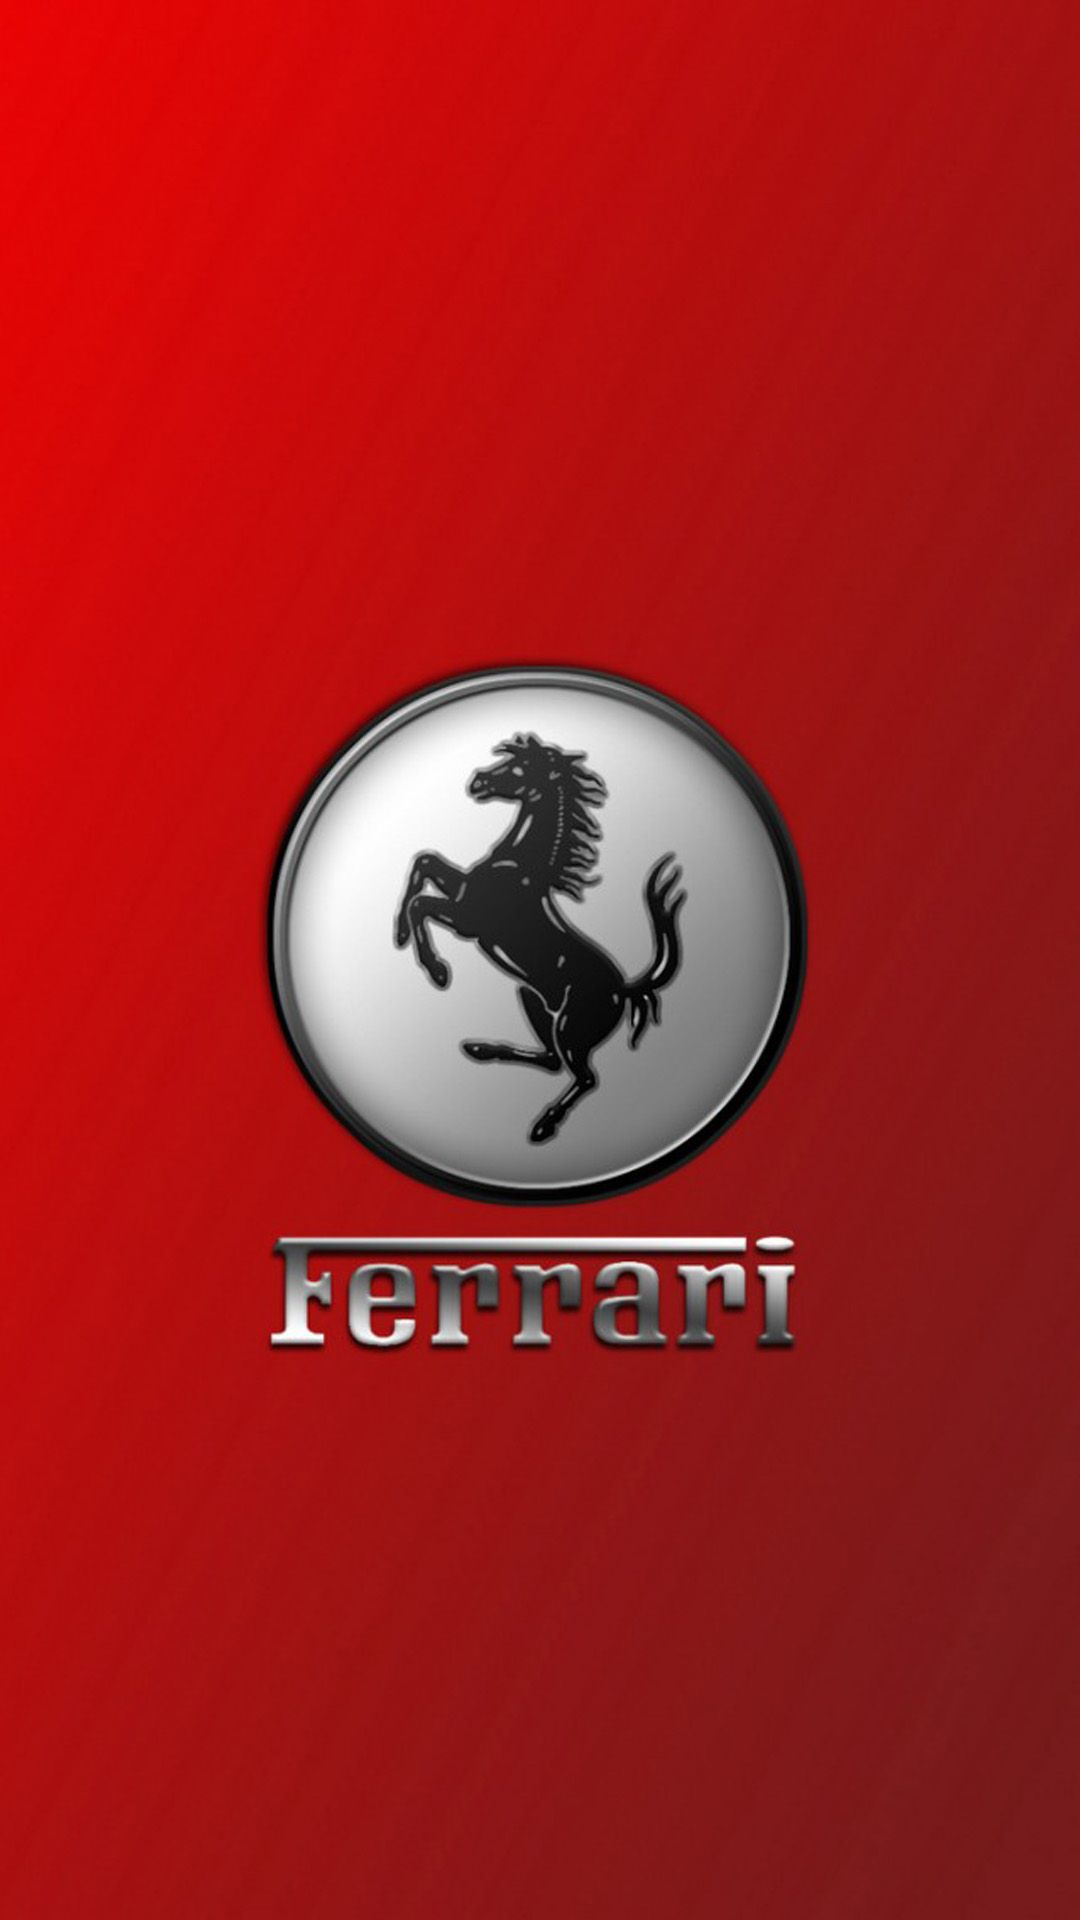 Download ferrari wallpapers to your cell phone ferrari logo hd download ferrari wallpapers to your cell phone ferrari logo hd voltagebd Choice Image